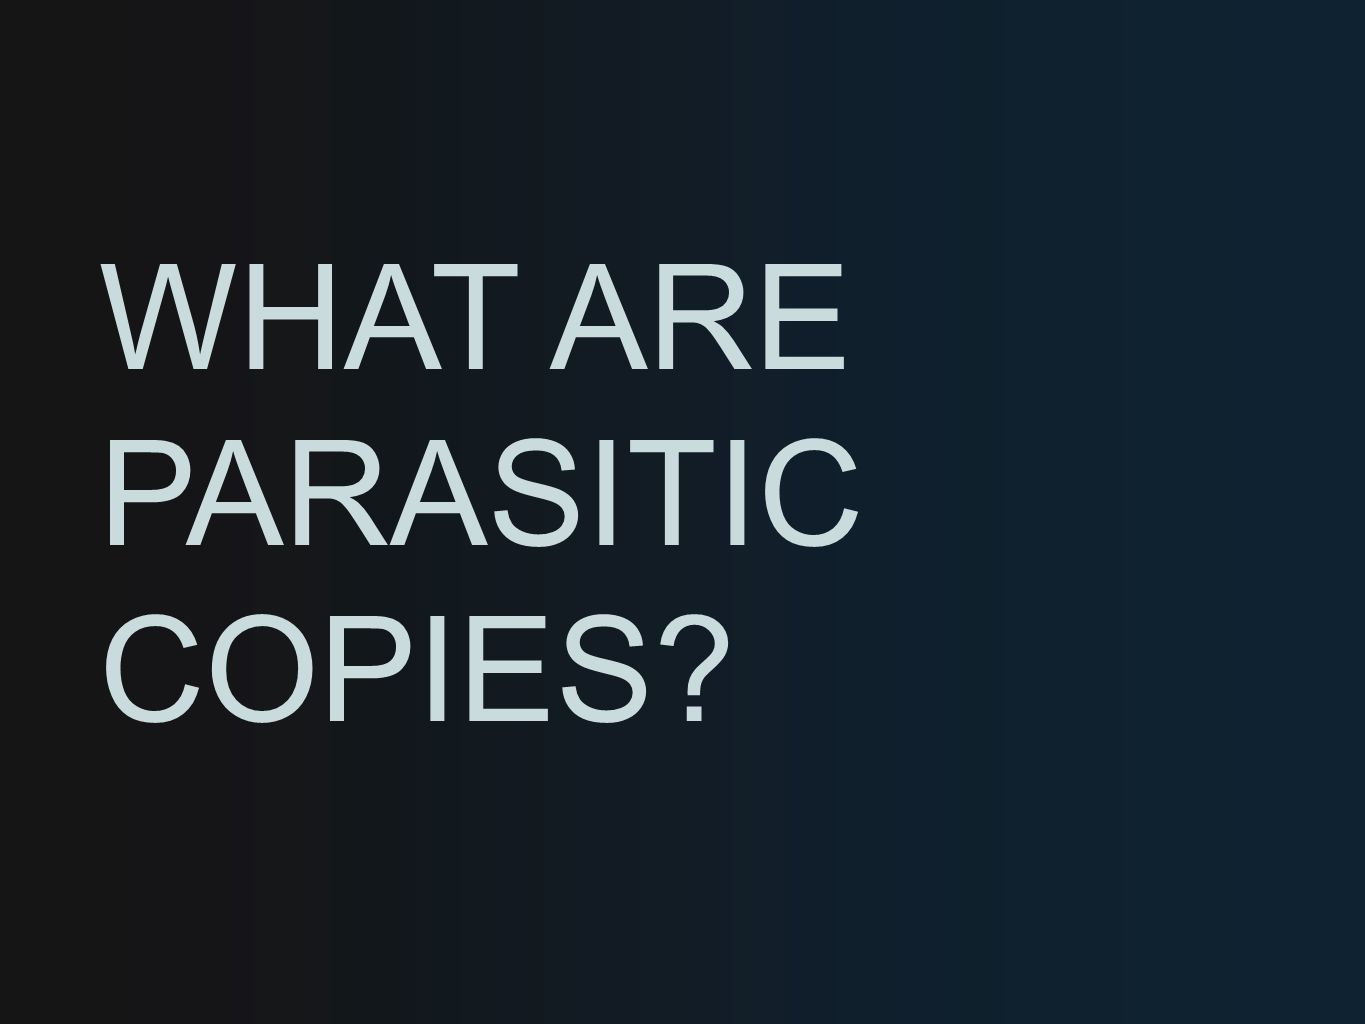 Parasitic copying is a significant issue across Europe, which, if left alone, will continue to grow.